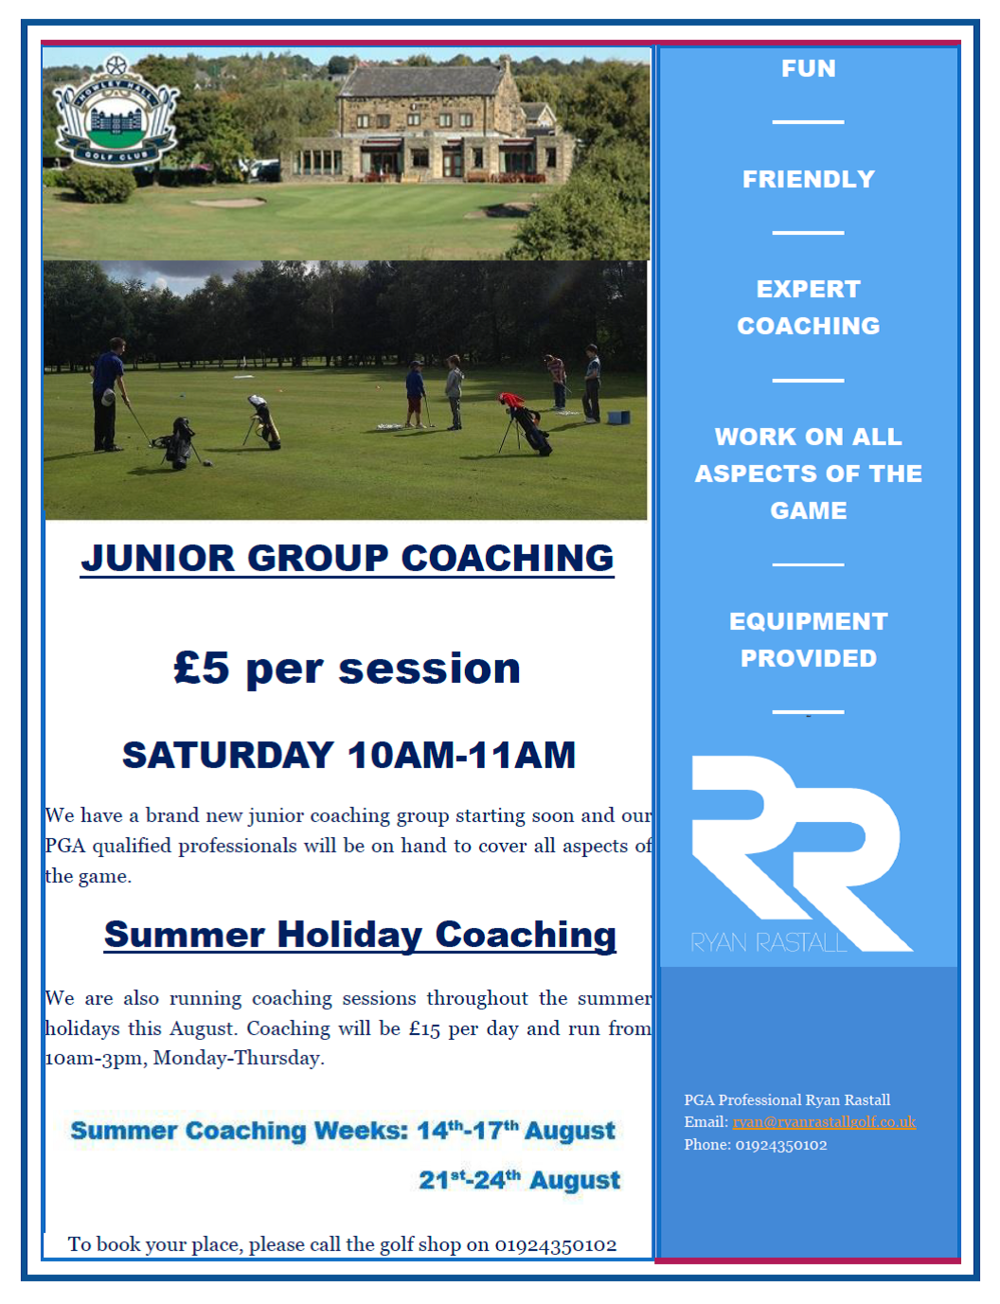 Howley Hall Golf Club - Summer Holiday coaching